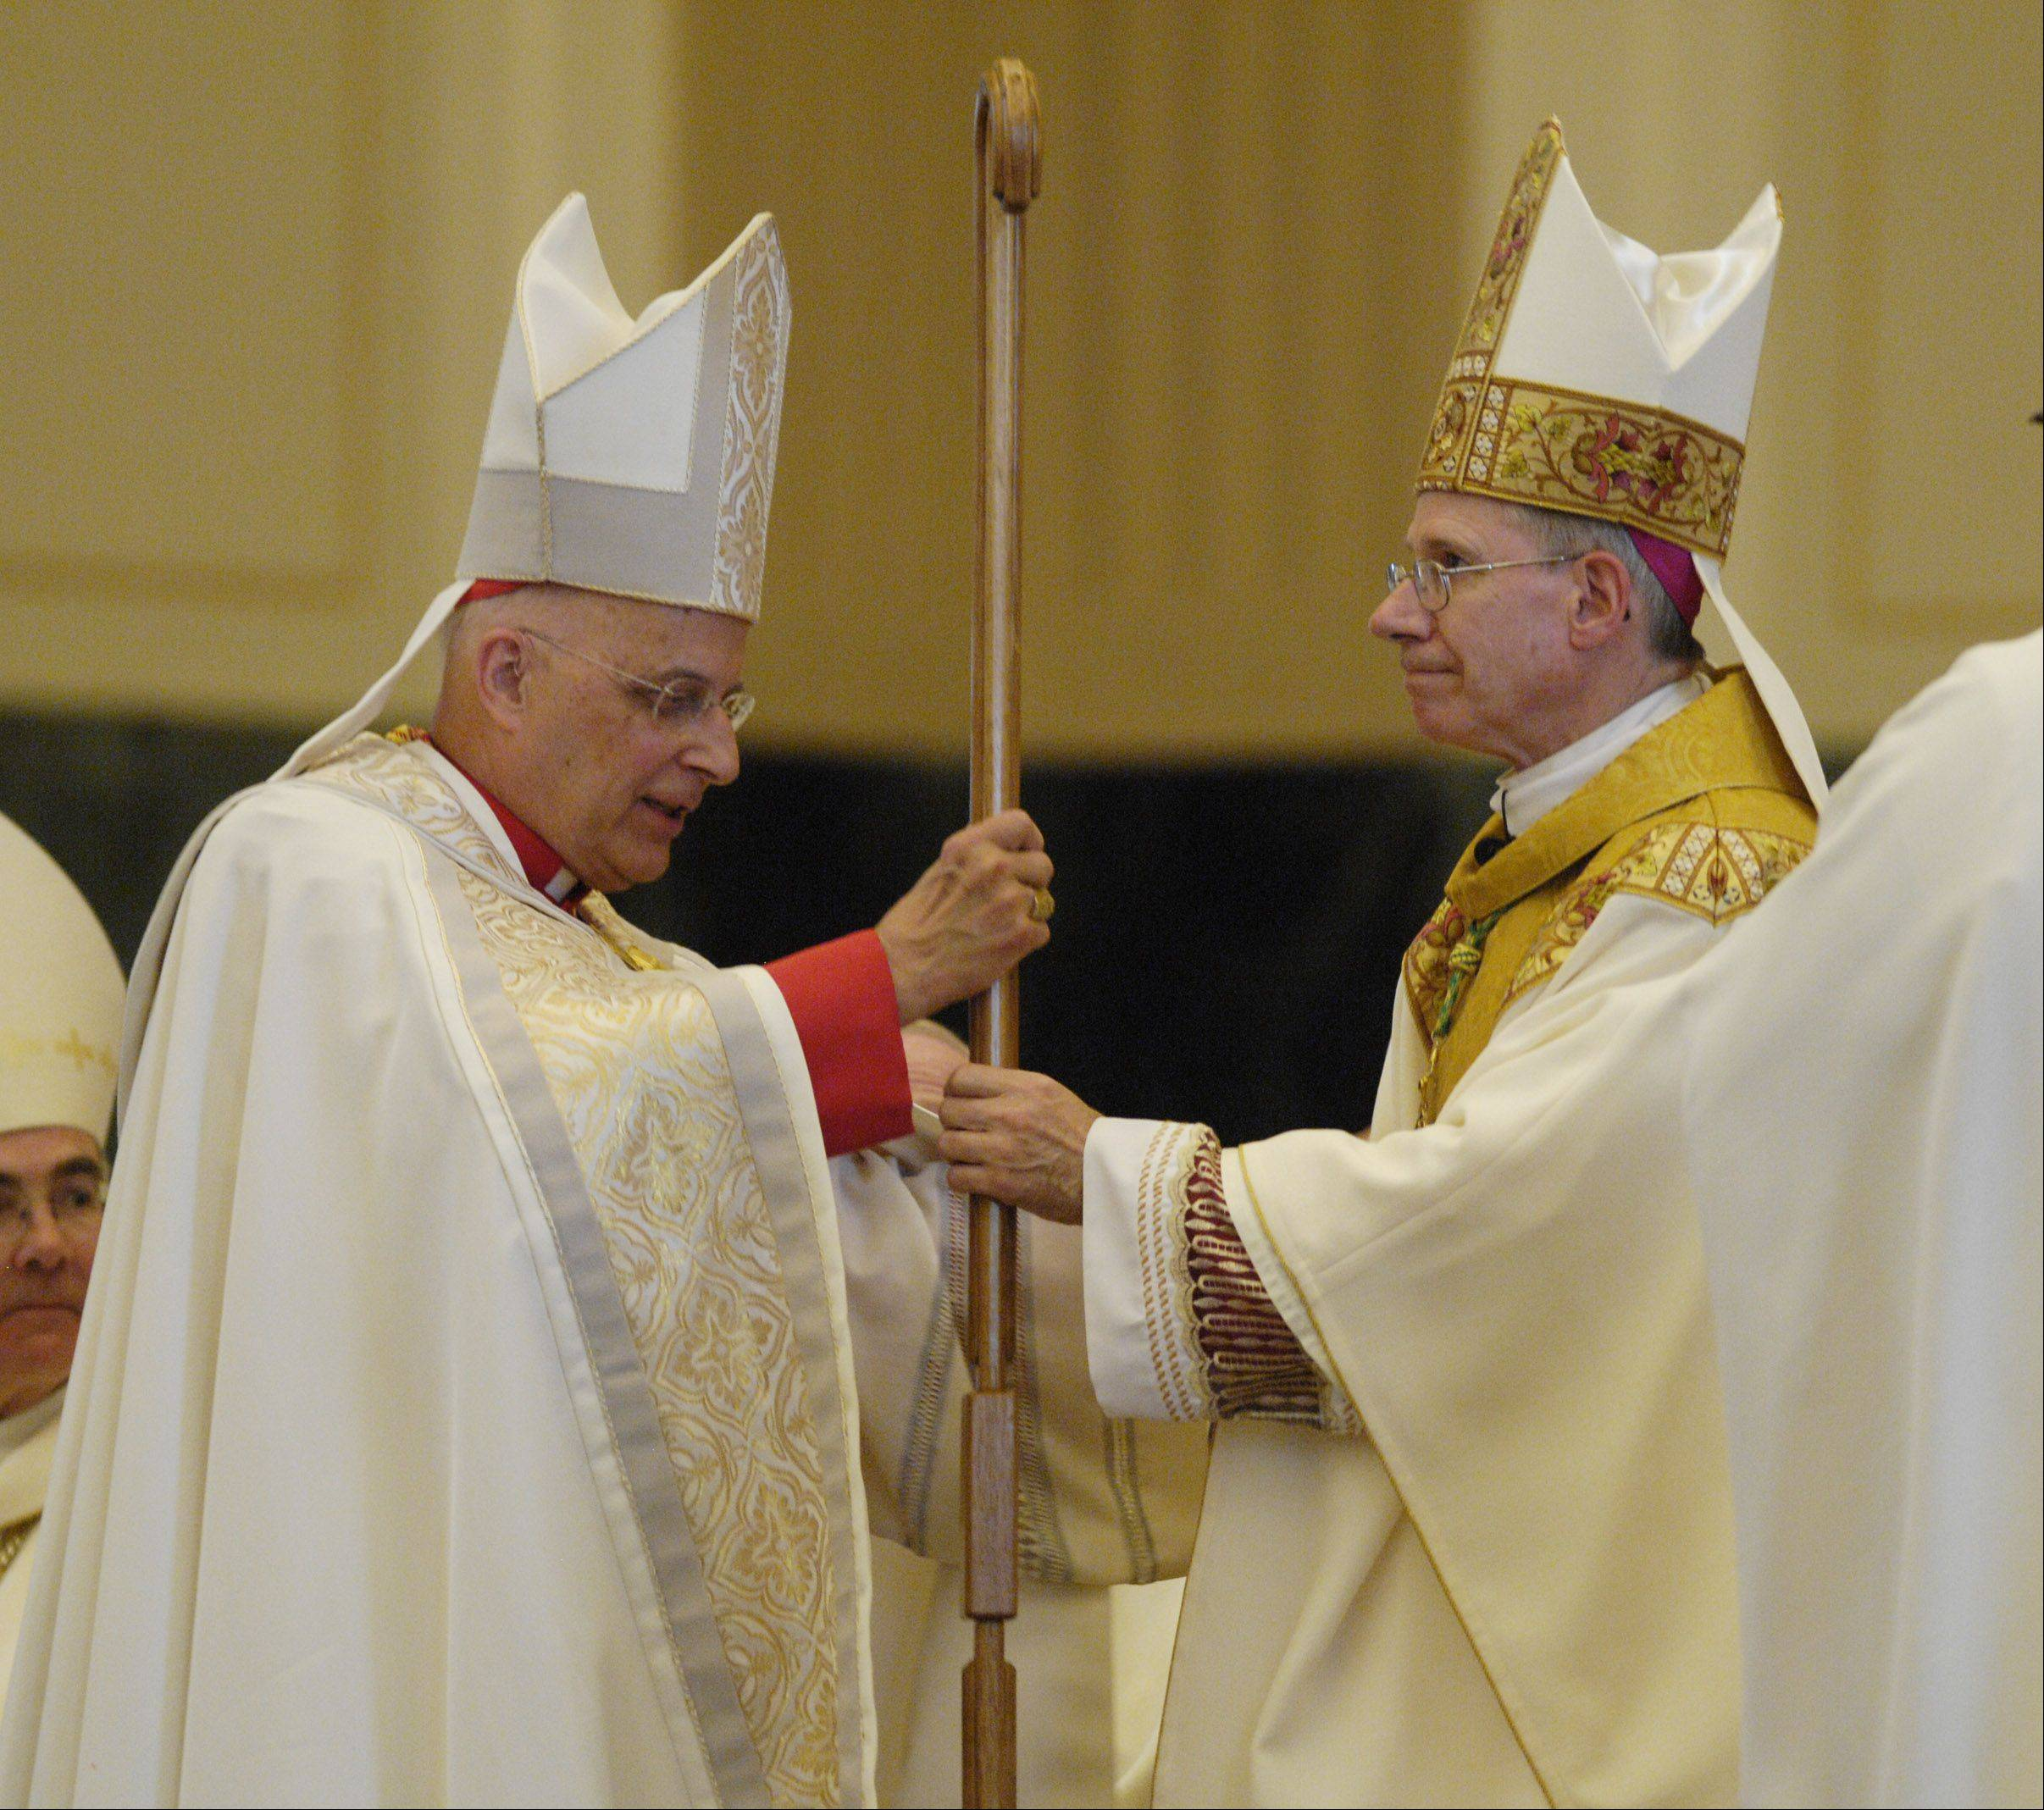 Cardinal Francis George of the Chicago Archdiocese passes the crosier to Rev. R. Daniel Conlon, during Conlon's installation as the fifth bishop of the Diocese of Joliet on Wednesday at the Cathedral of St. Raymond Nonnatus in Joliet.